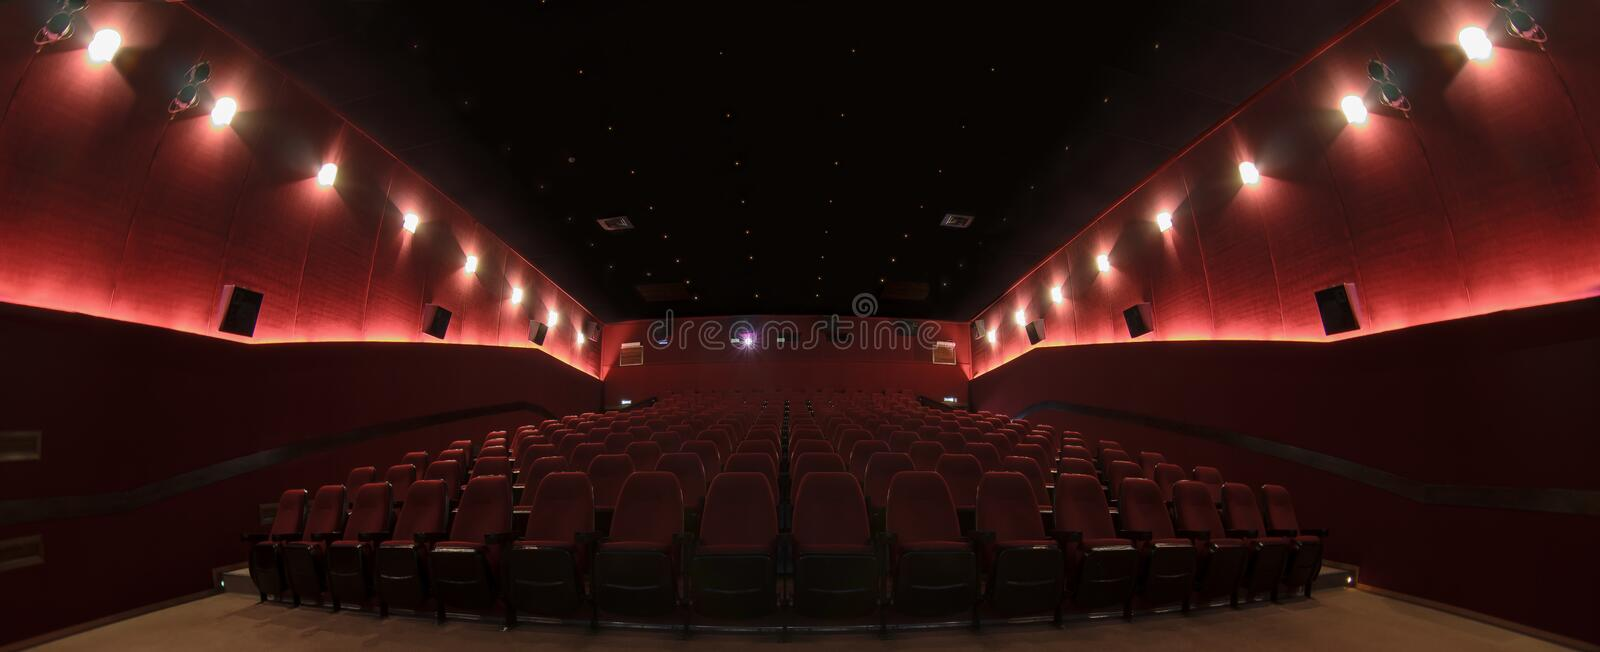 In a cinema hall royalty free stock image